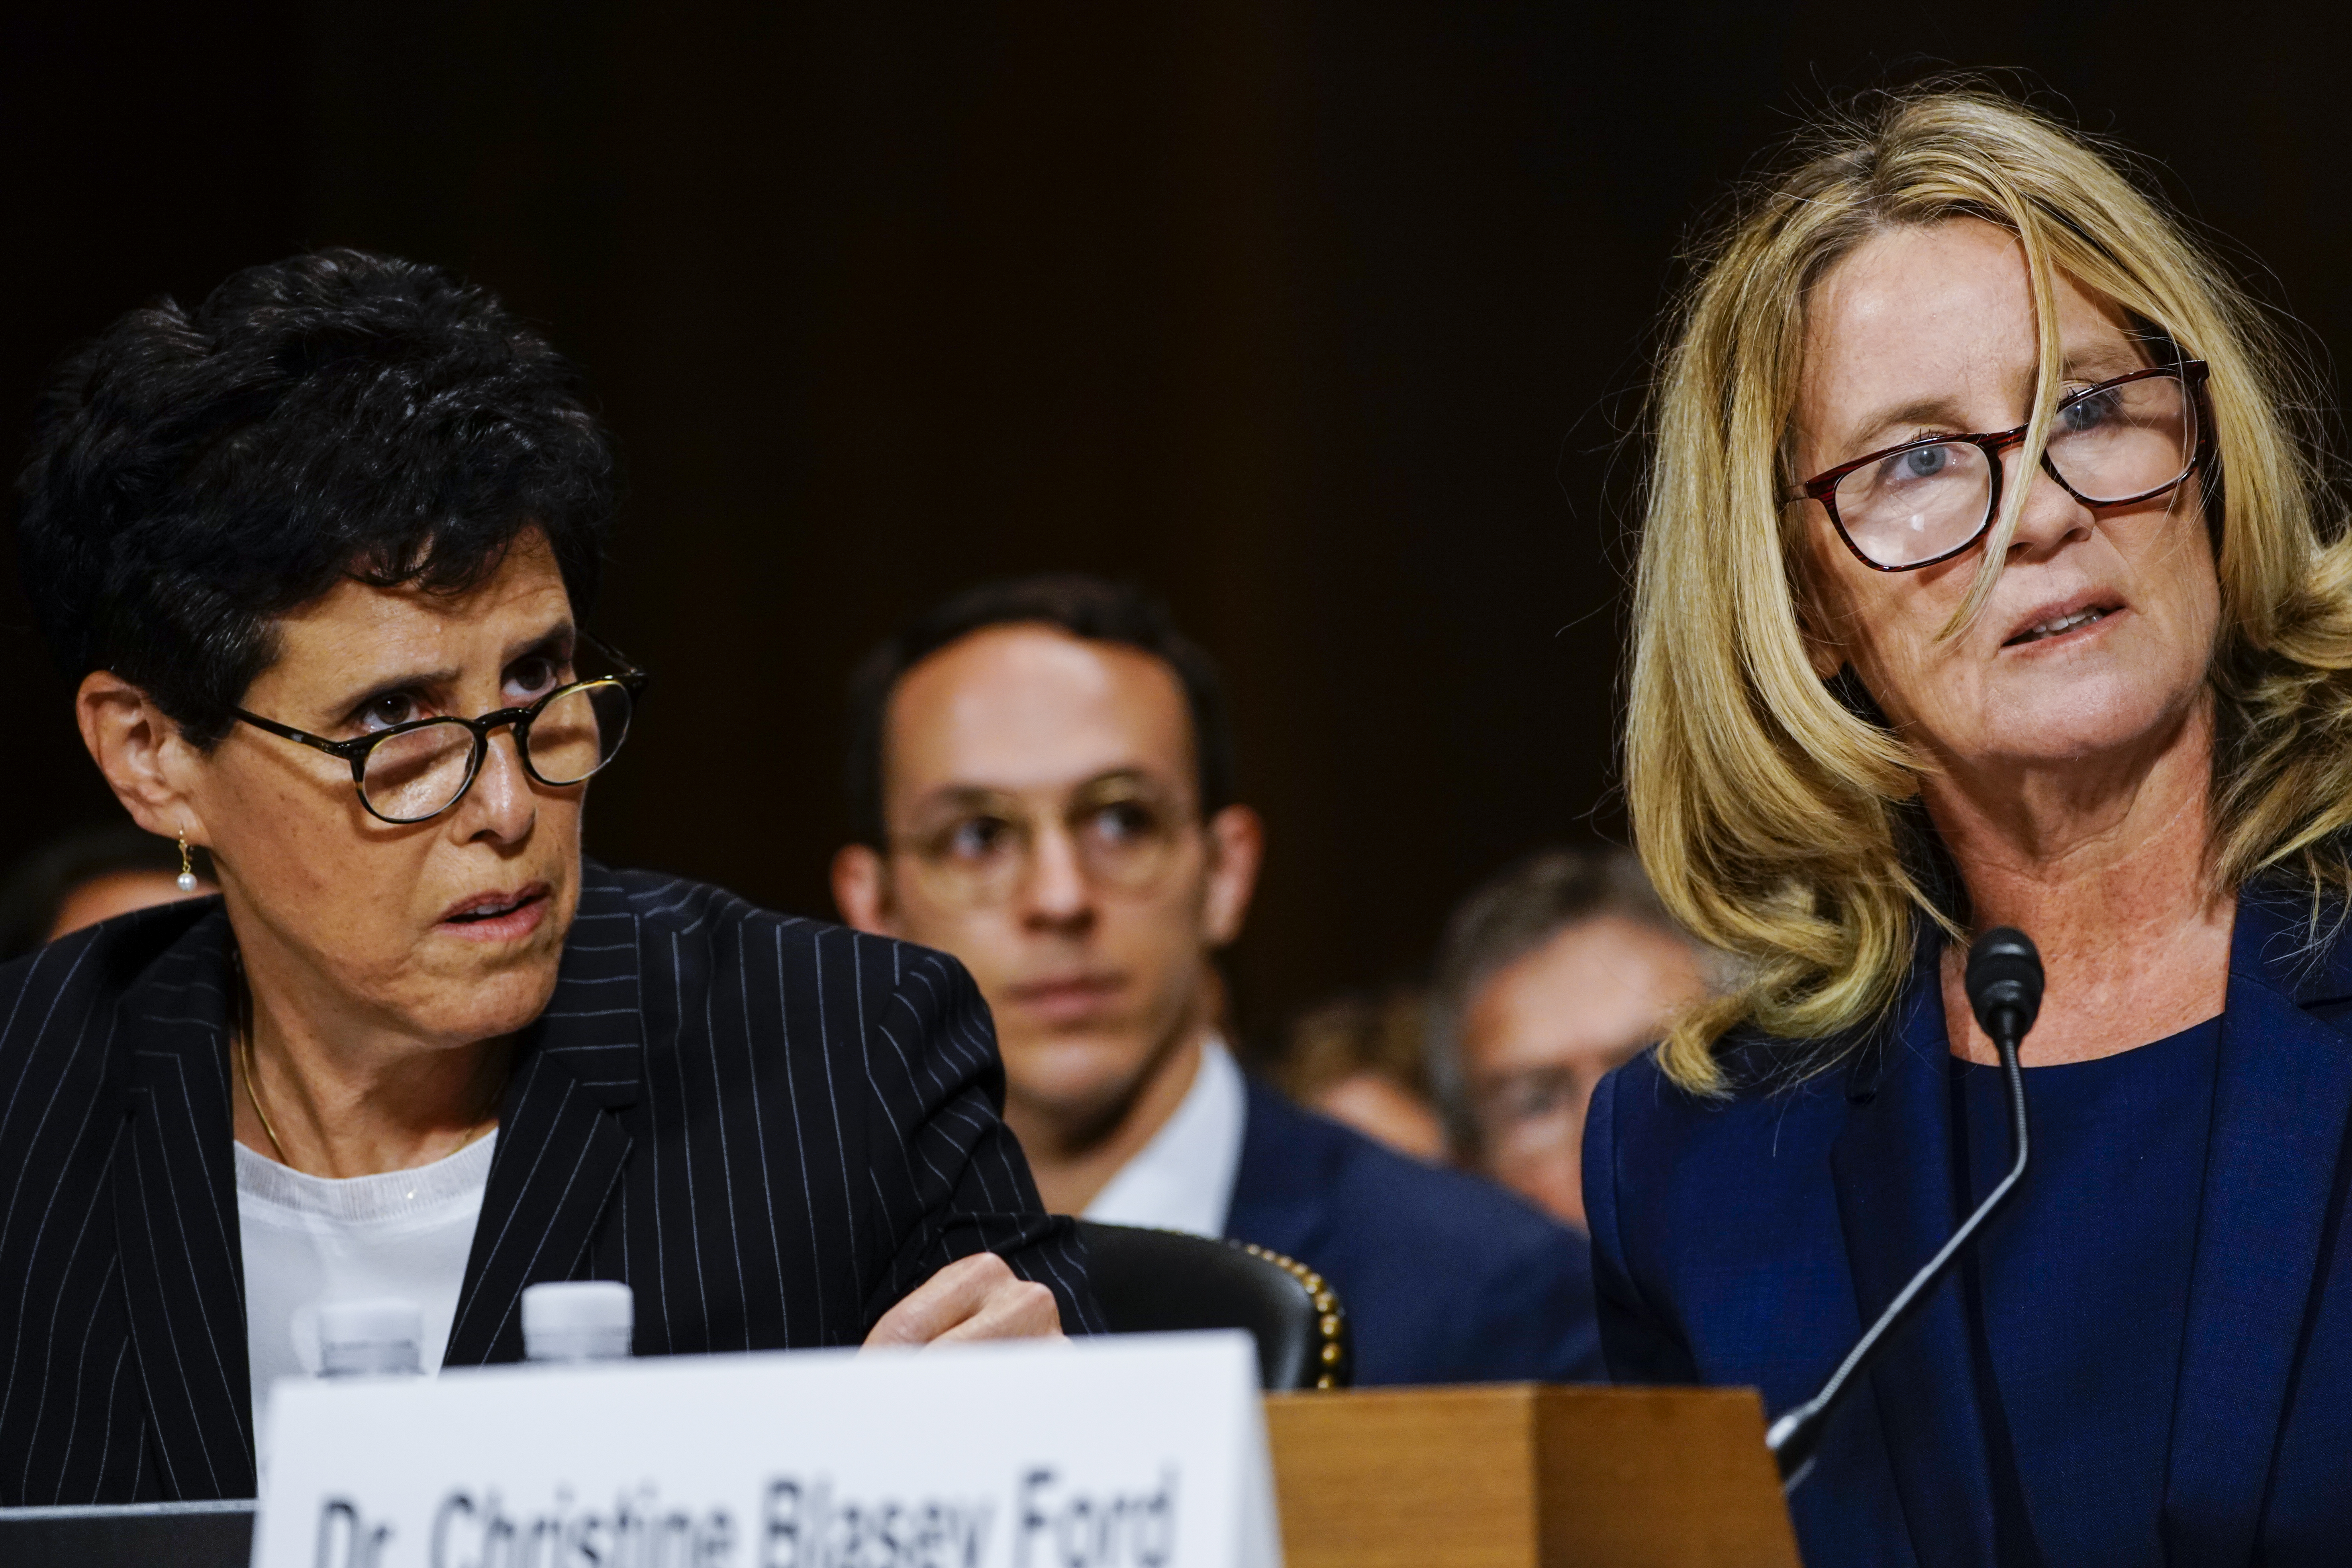 WASHINGTON, DC - SEPTEMBER 27: Dr. Christine Blasey Ford, with lawyer Debra S. Katz, left, answers questions at a Senate Judiciary Committee hearing in the Dirksen Senate Office Building on Capitol Hill September 27, 2018 in Washington, DC. (Melina Mara-Pool/Getty Images)